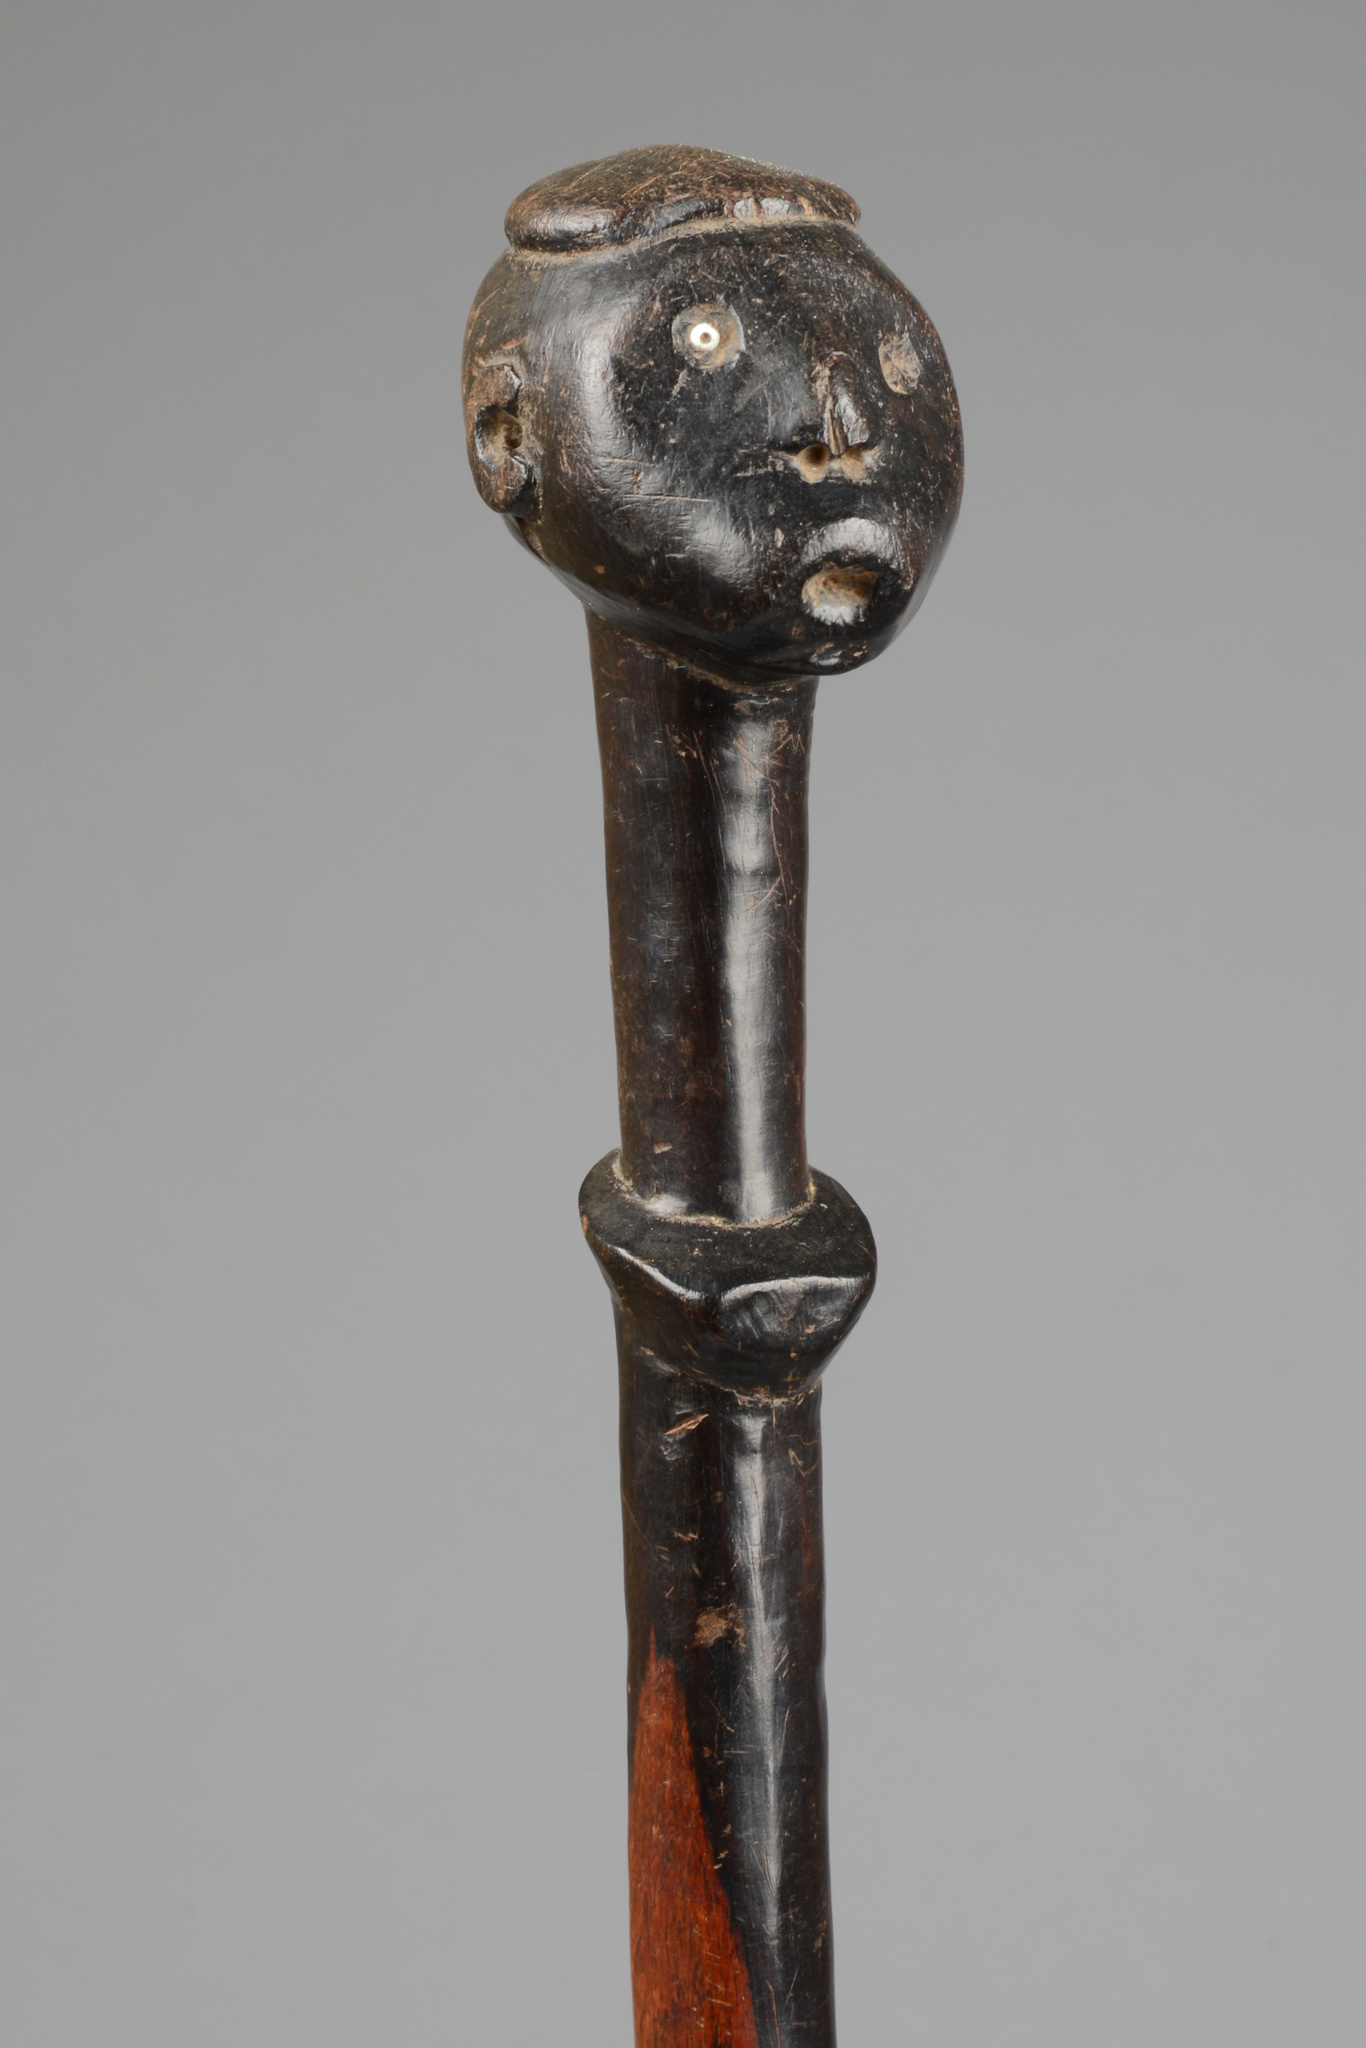 Staff with anthropomorphic head